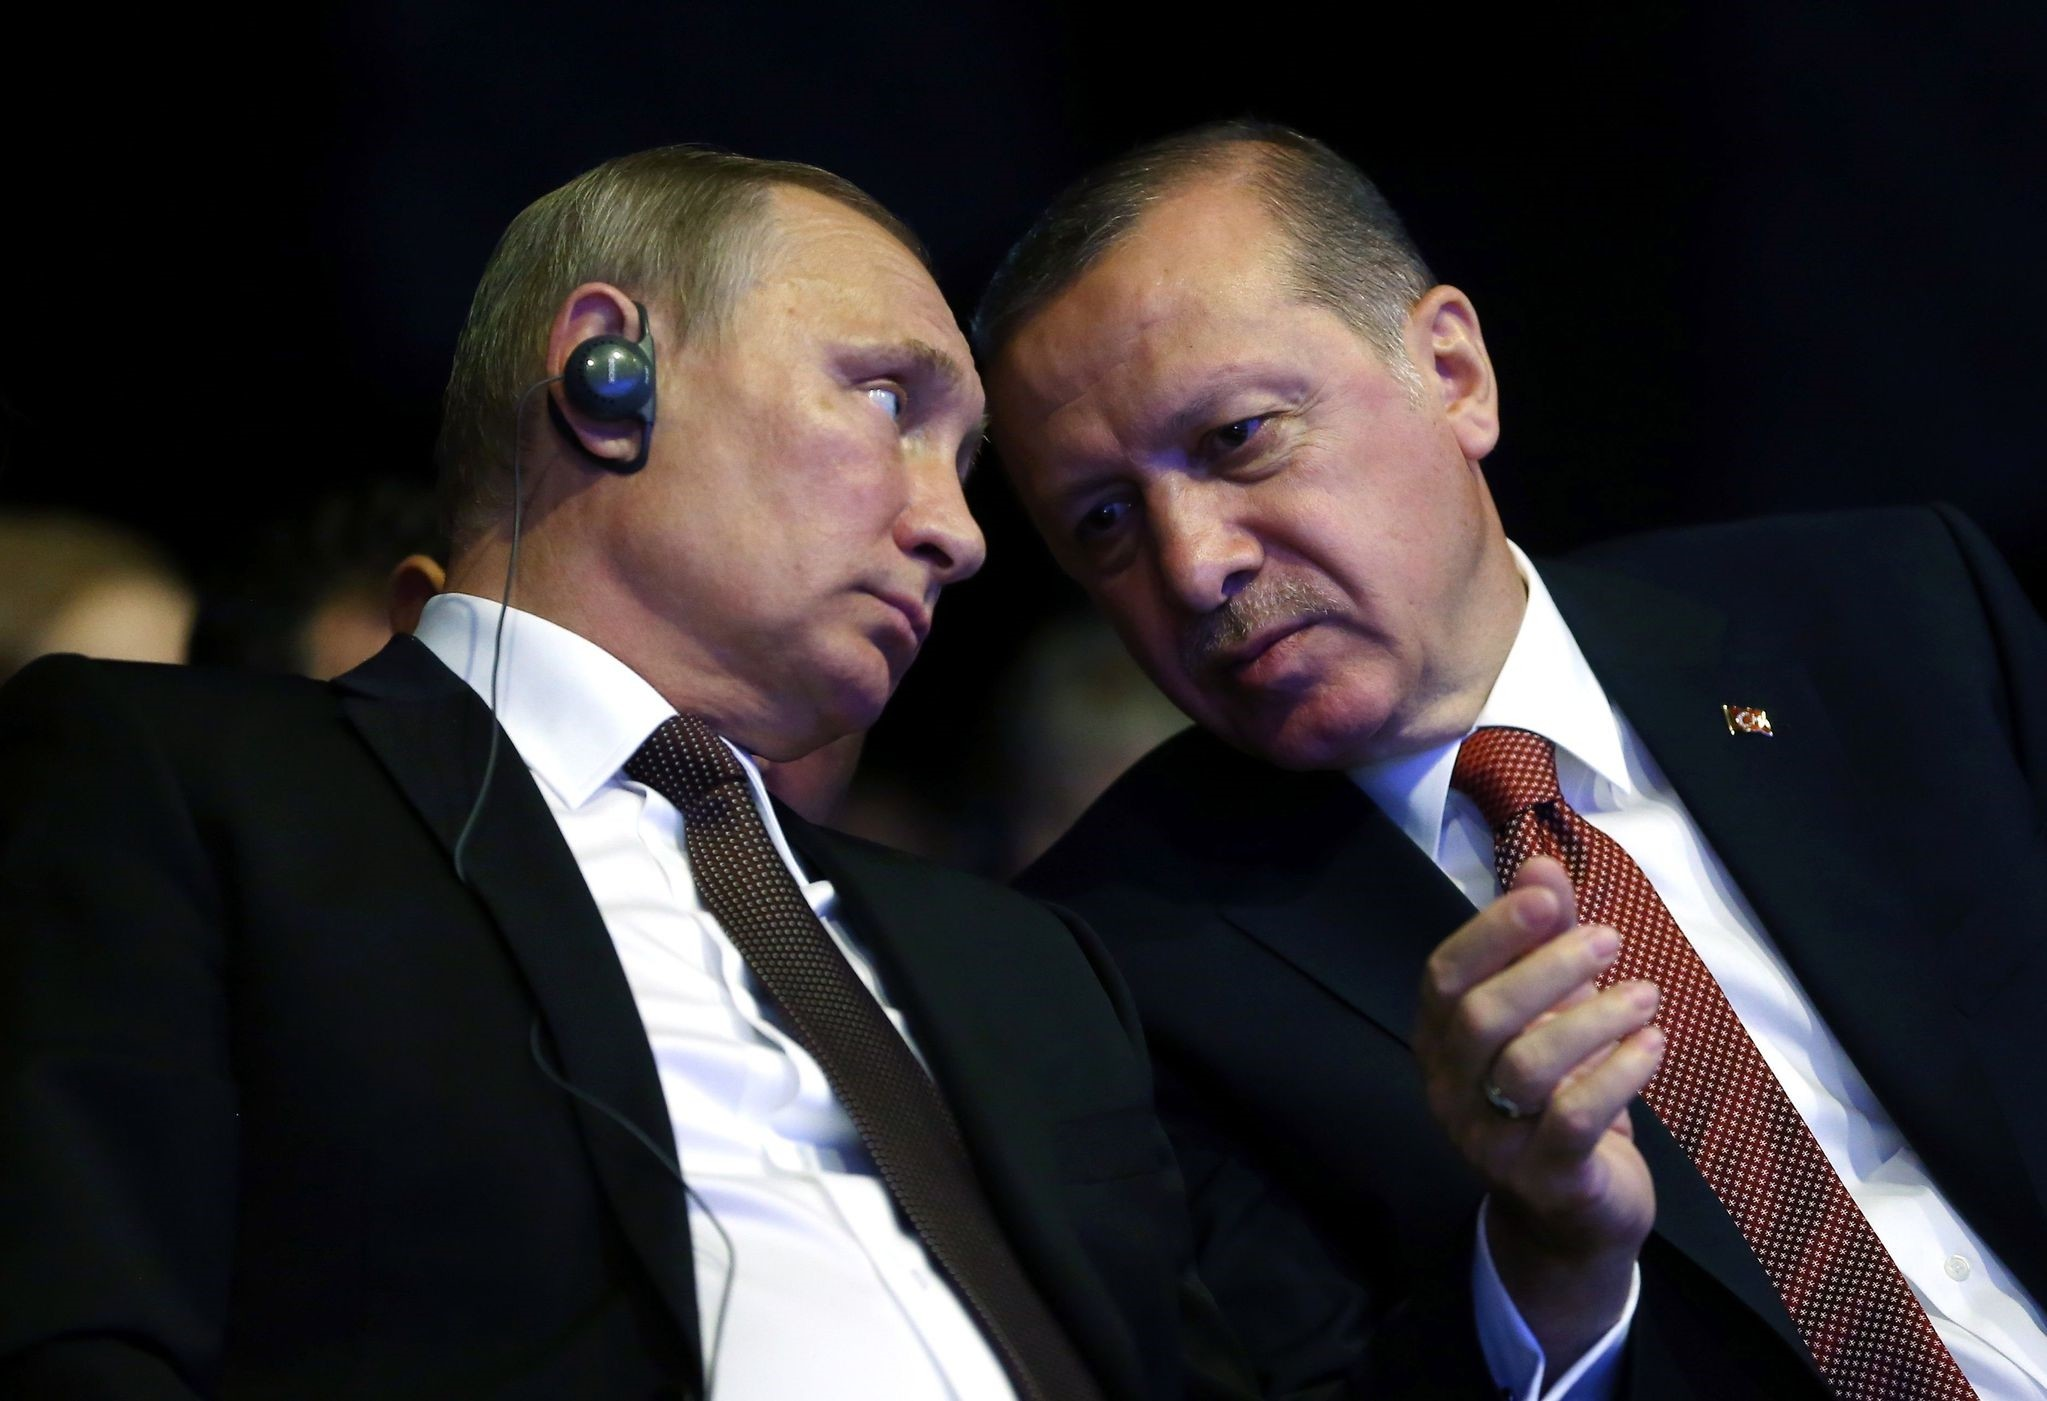 This file photo taken on October 10, 2016 show President Erdogan (R) talking with Putin during the opening ceremony of the 23rd World Energy Congress.